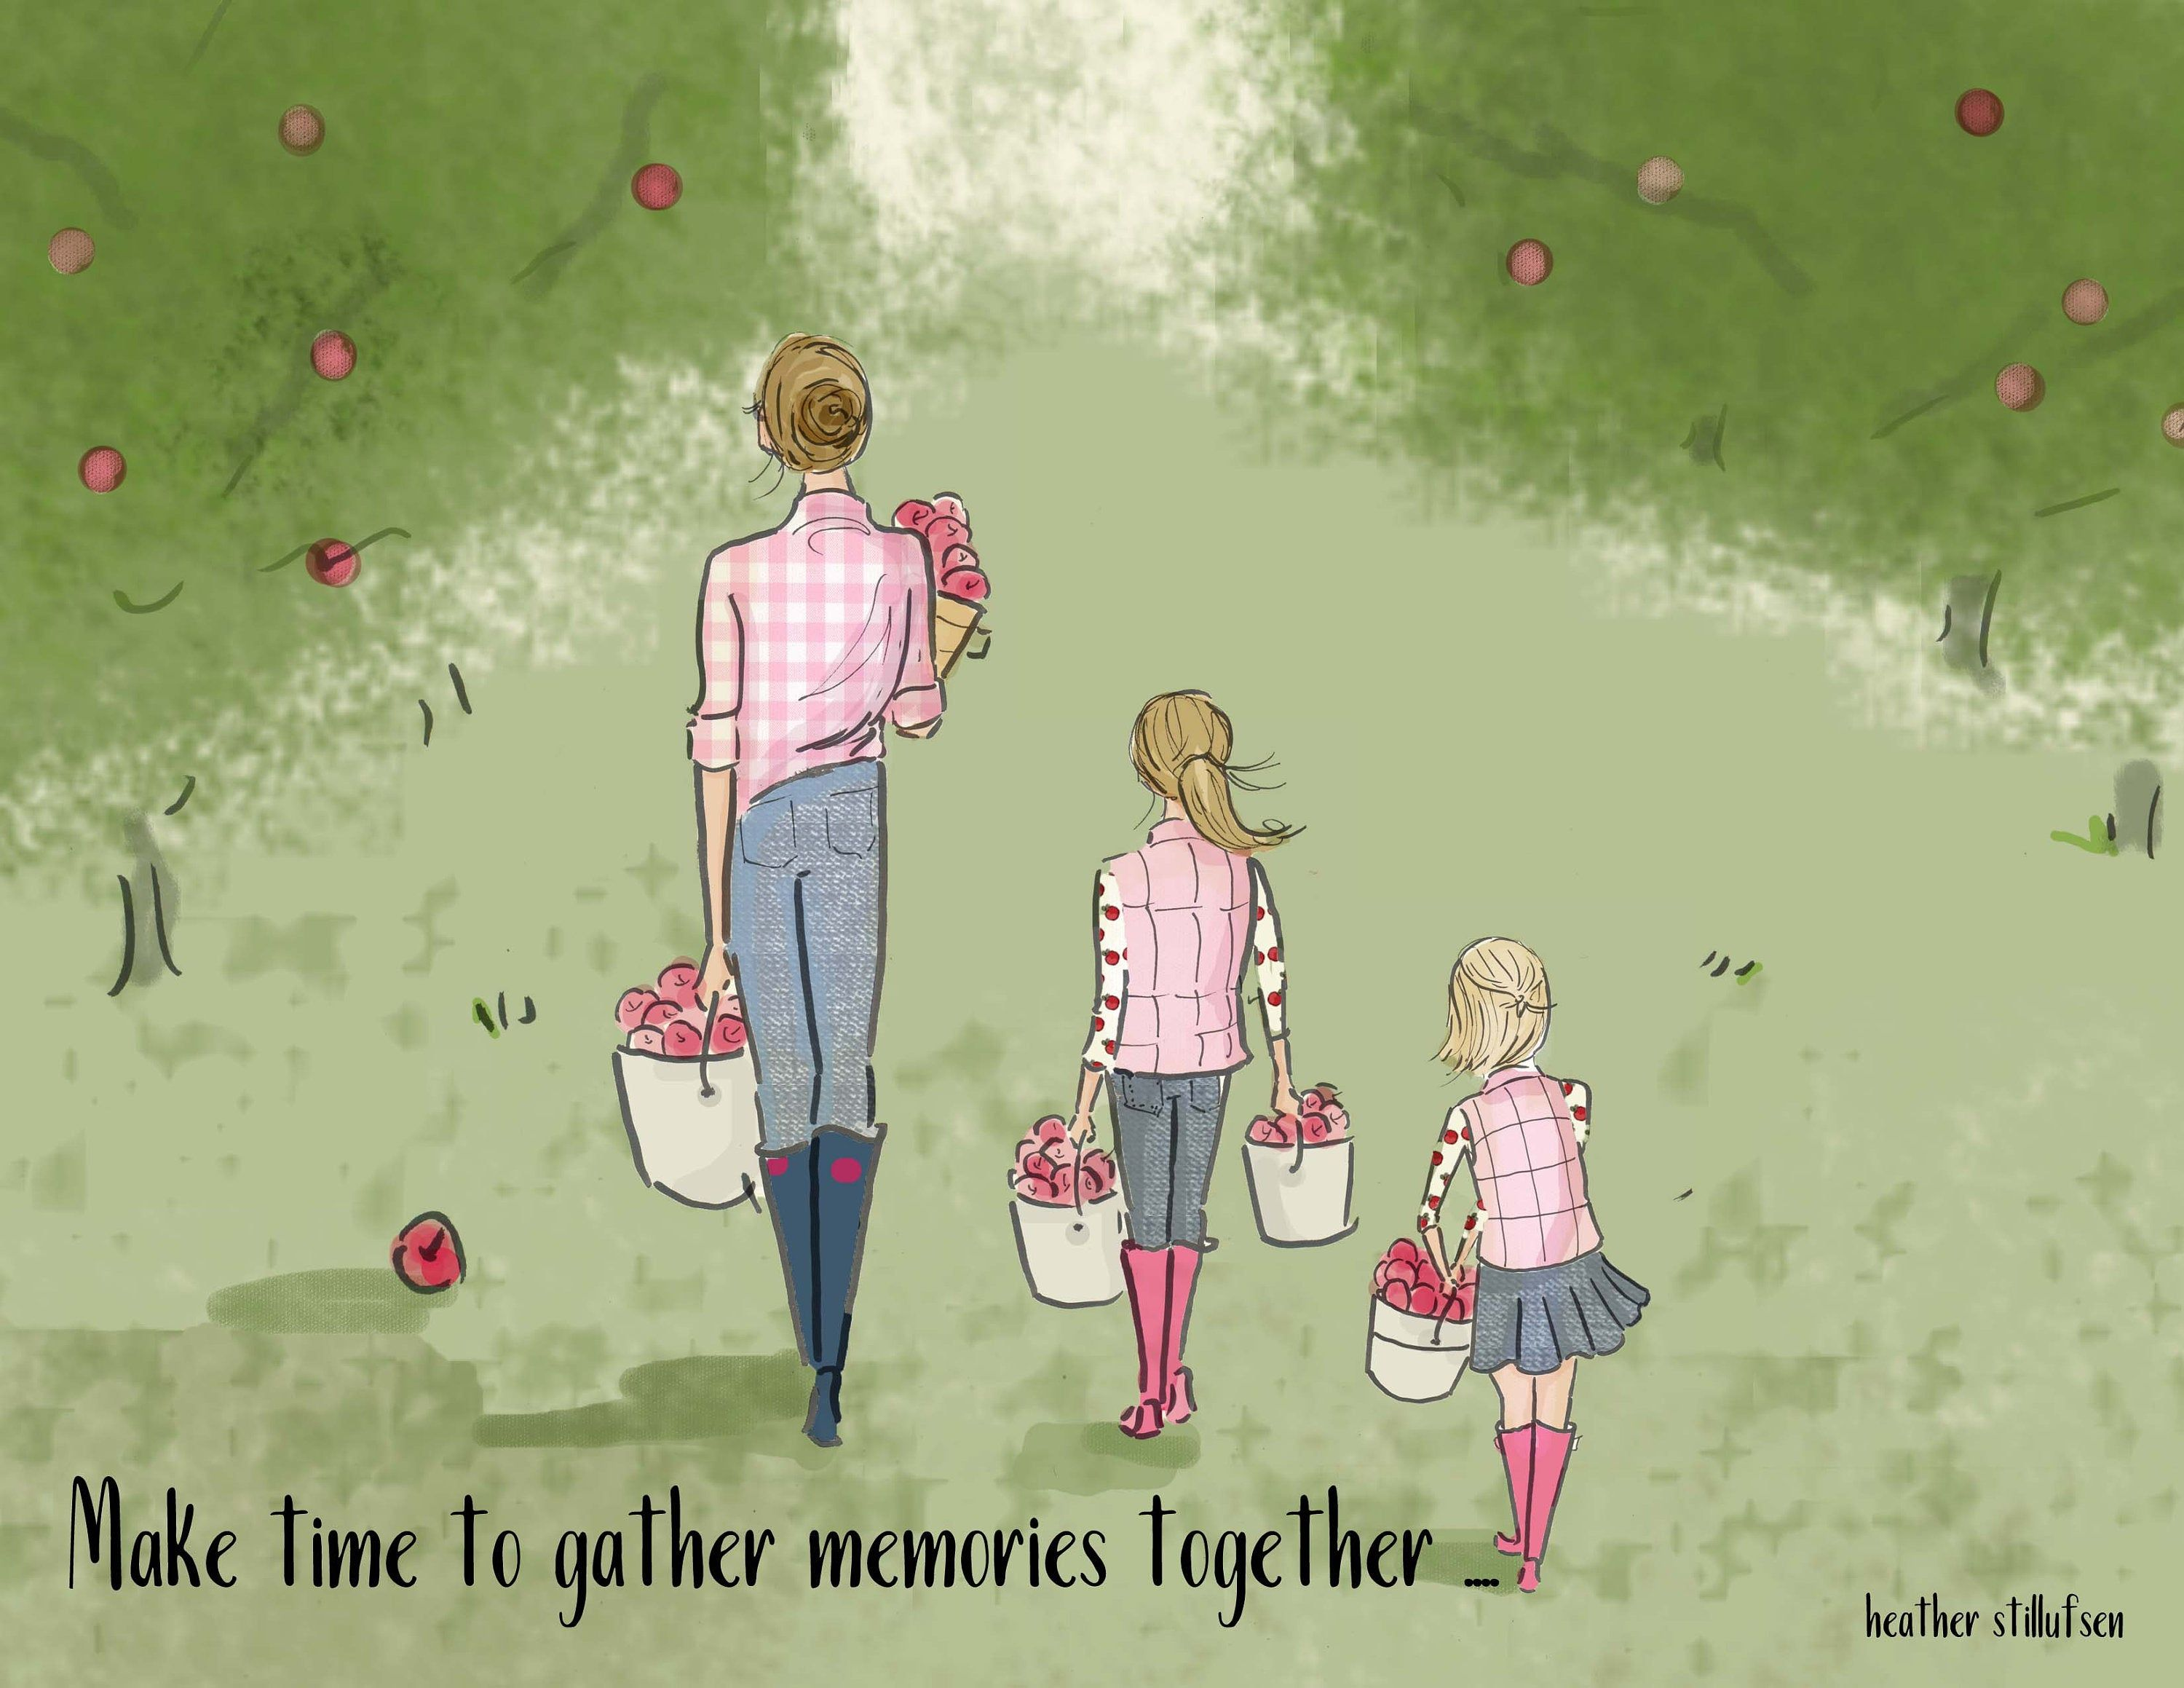 Mother Daughter Art - Gather Memories - Heather Stillufsen - Mom and daughter Quotes - Heather Stillufsen Quotes